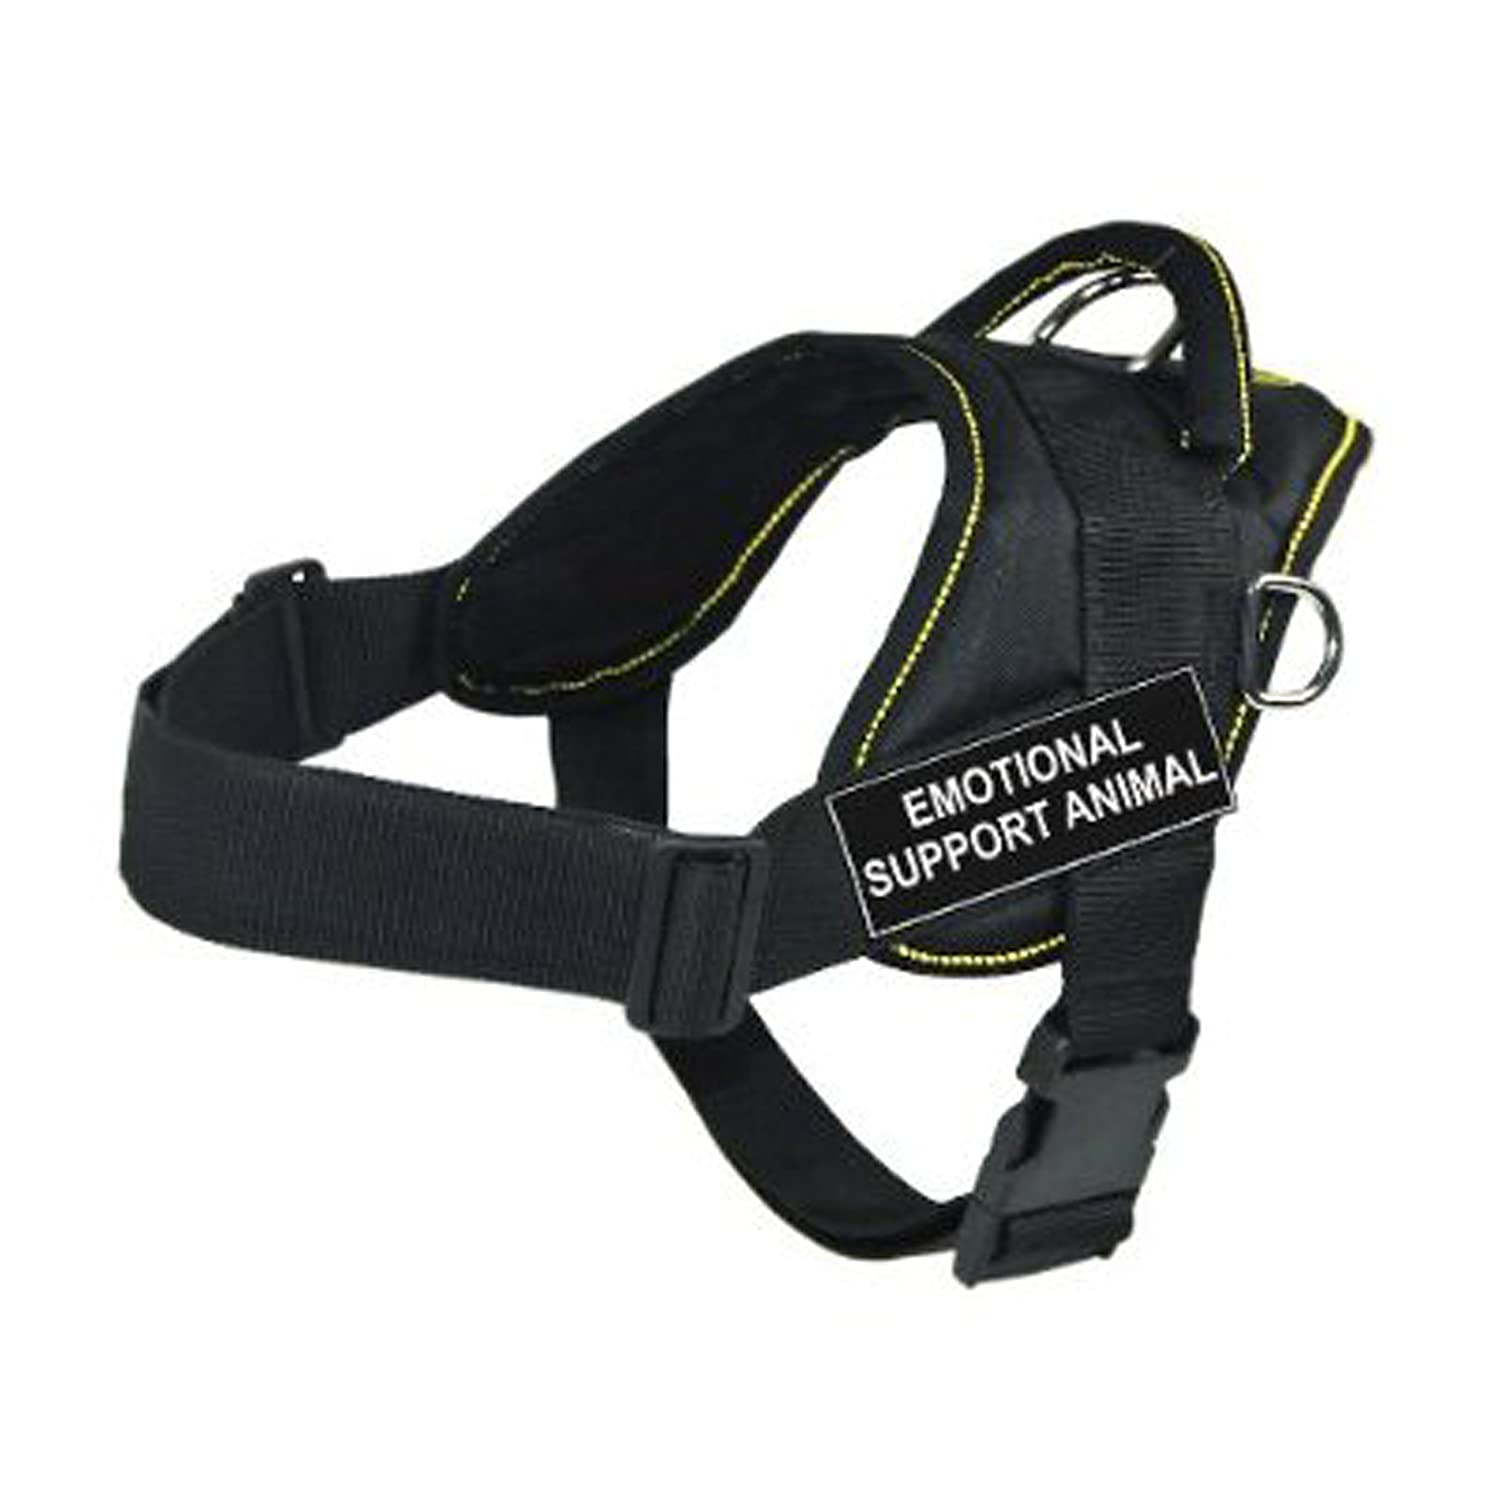 Dean & Tyler Fun Works Harness, Emotional Support Animal, Black with Yellow Trim, Large, Fits Girth Size  32-Inch to 42-Inch